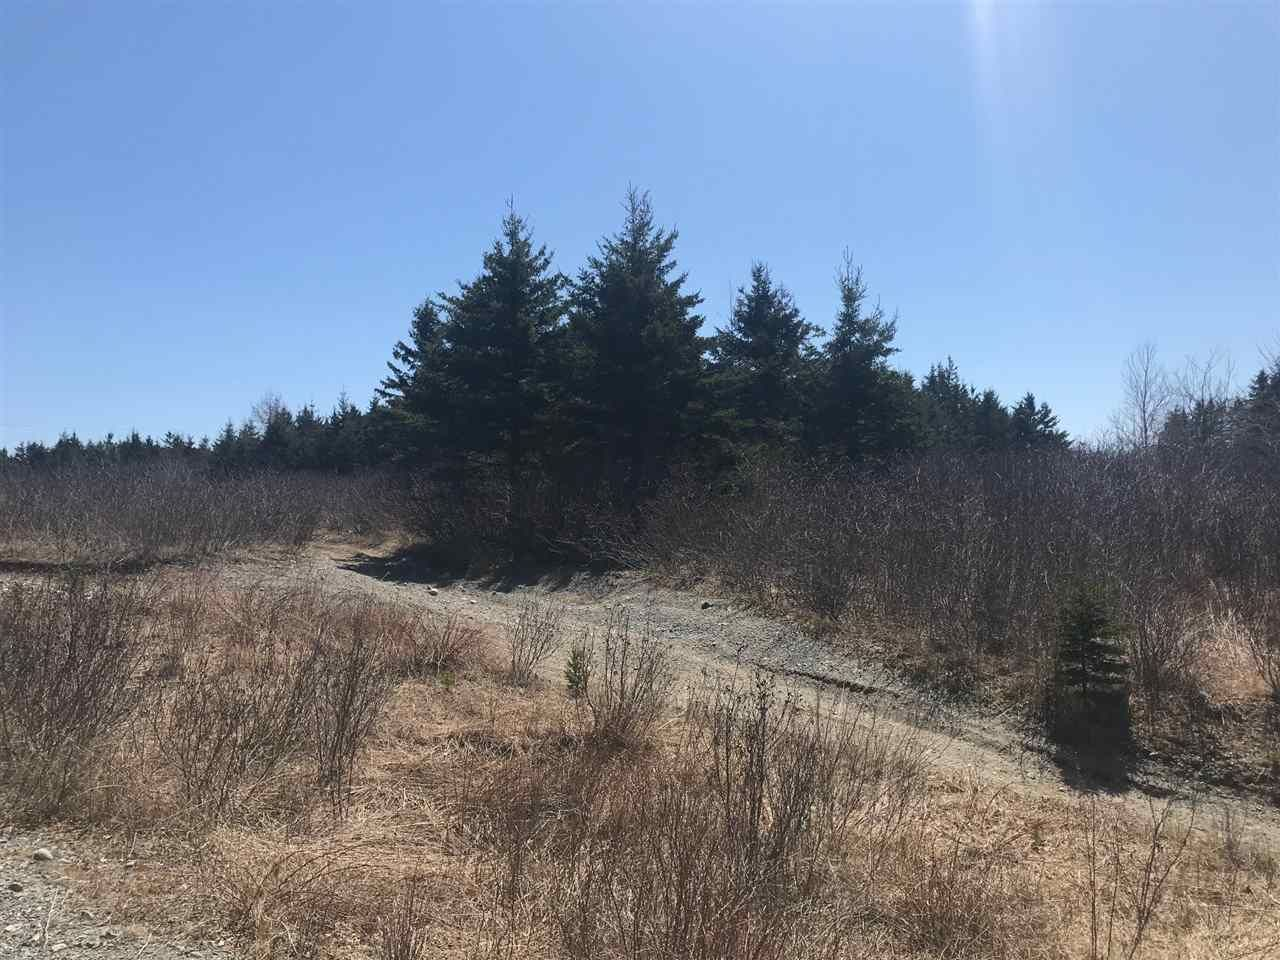 Photo 10: Photos: 11574 Highway 7 in Lake Charlotte: 35-Halifax County East Vacant Land for sale (Halifax-Dartmouth)  : MLS®# 201927372